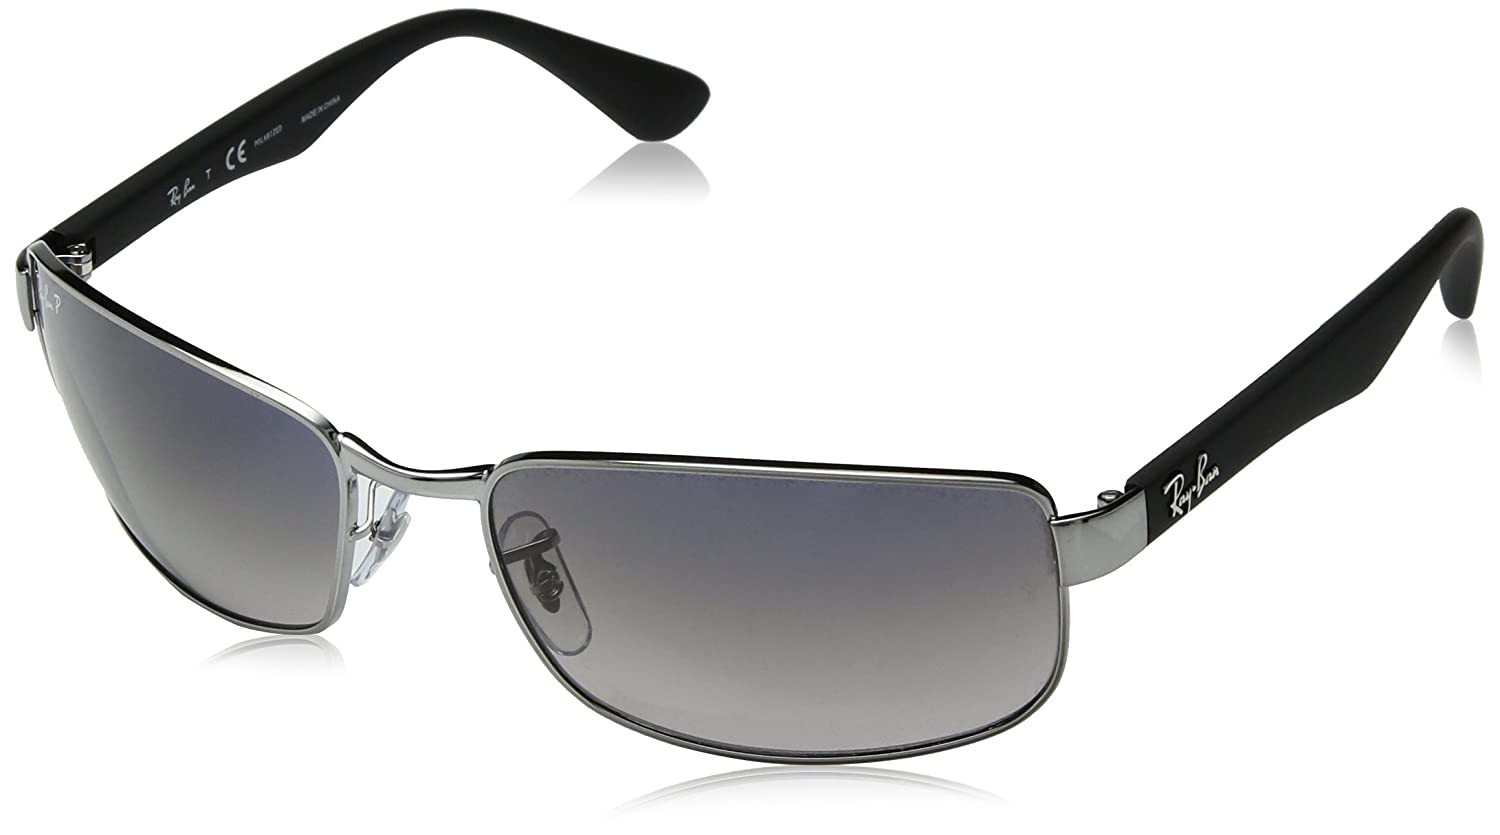 58dac24d53 Amazon.com  Ray-Ban RB3478 - 004 78 Polarized Sunglasses 60mm  Ray-Ban   Clothing